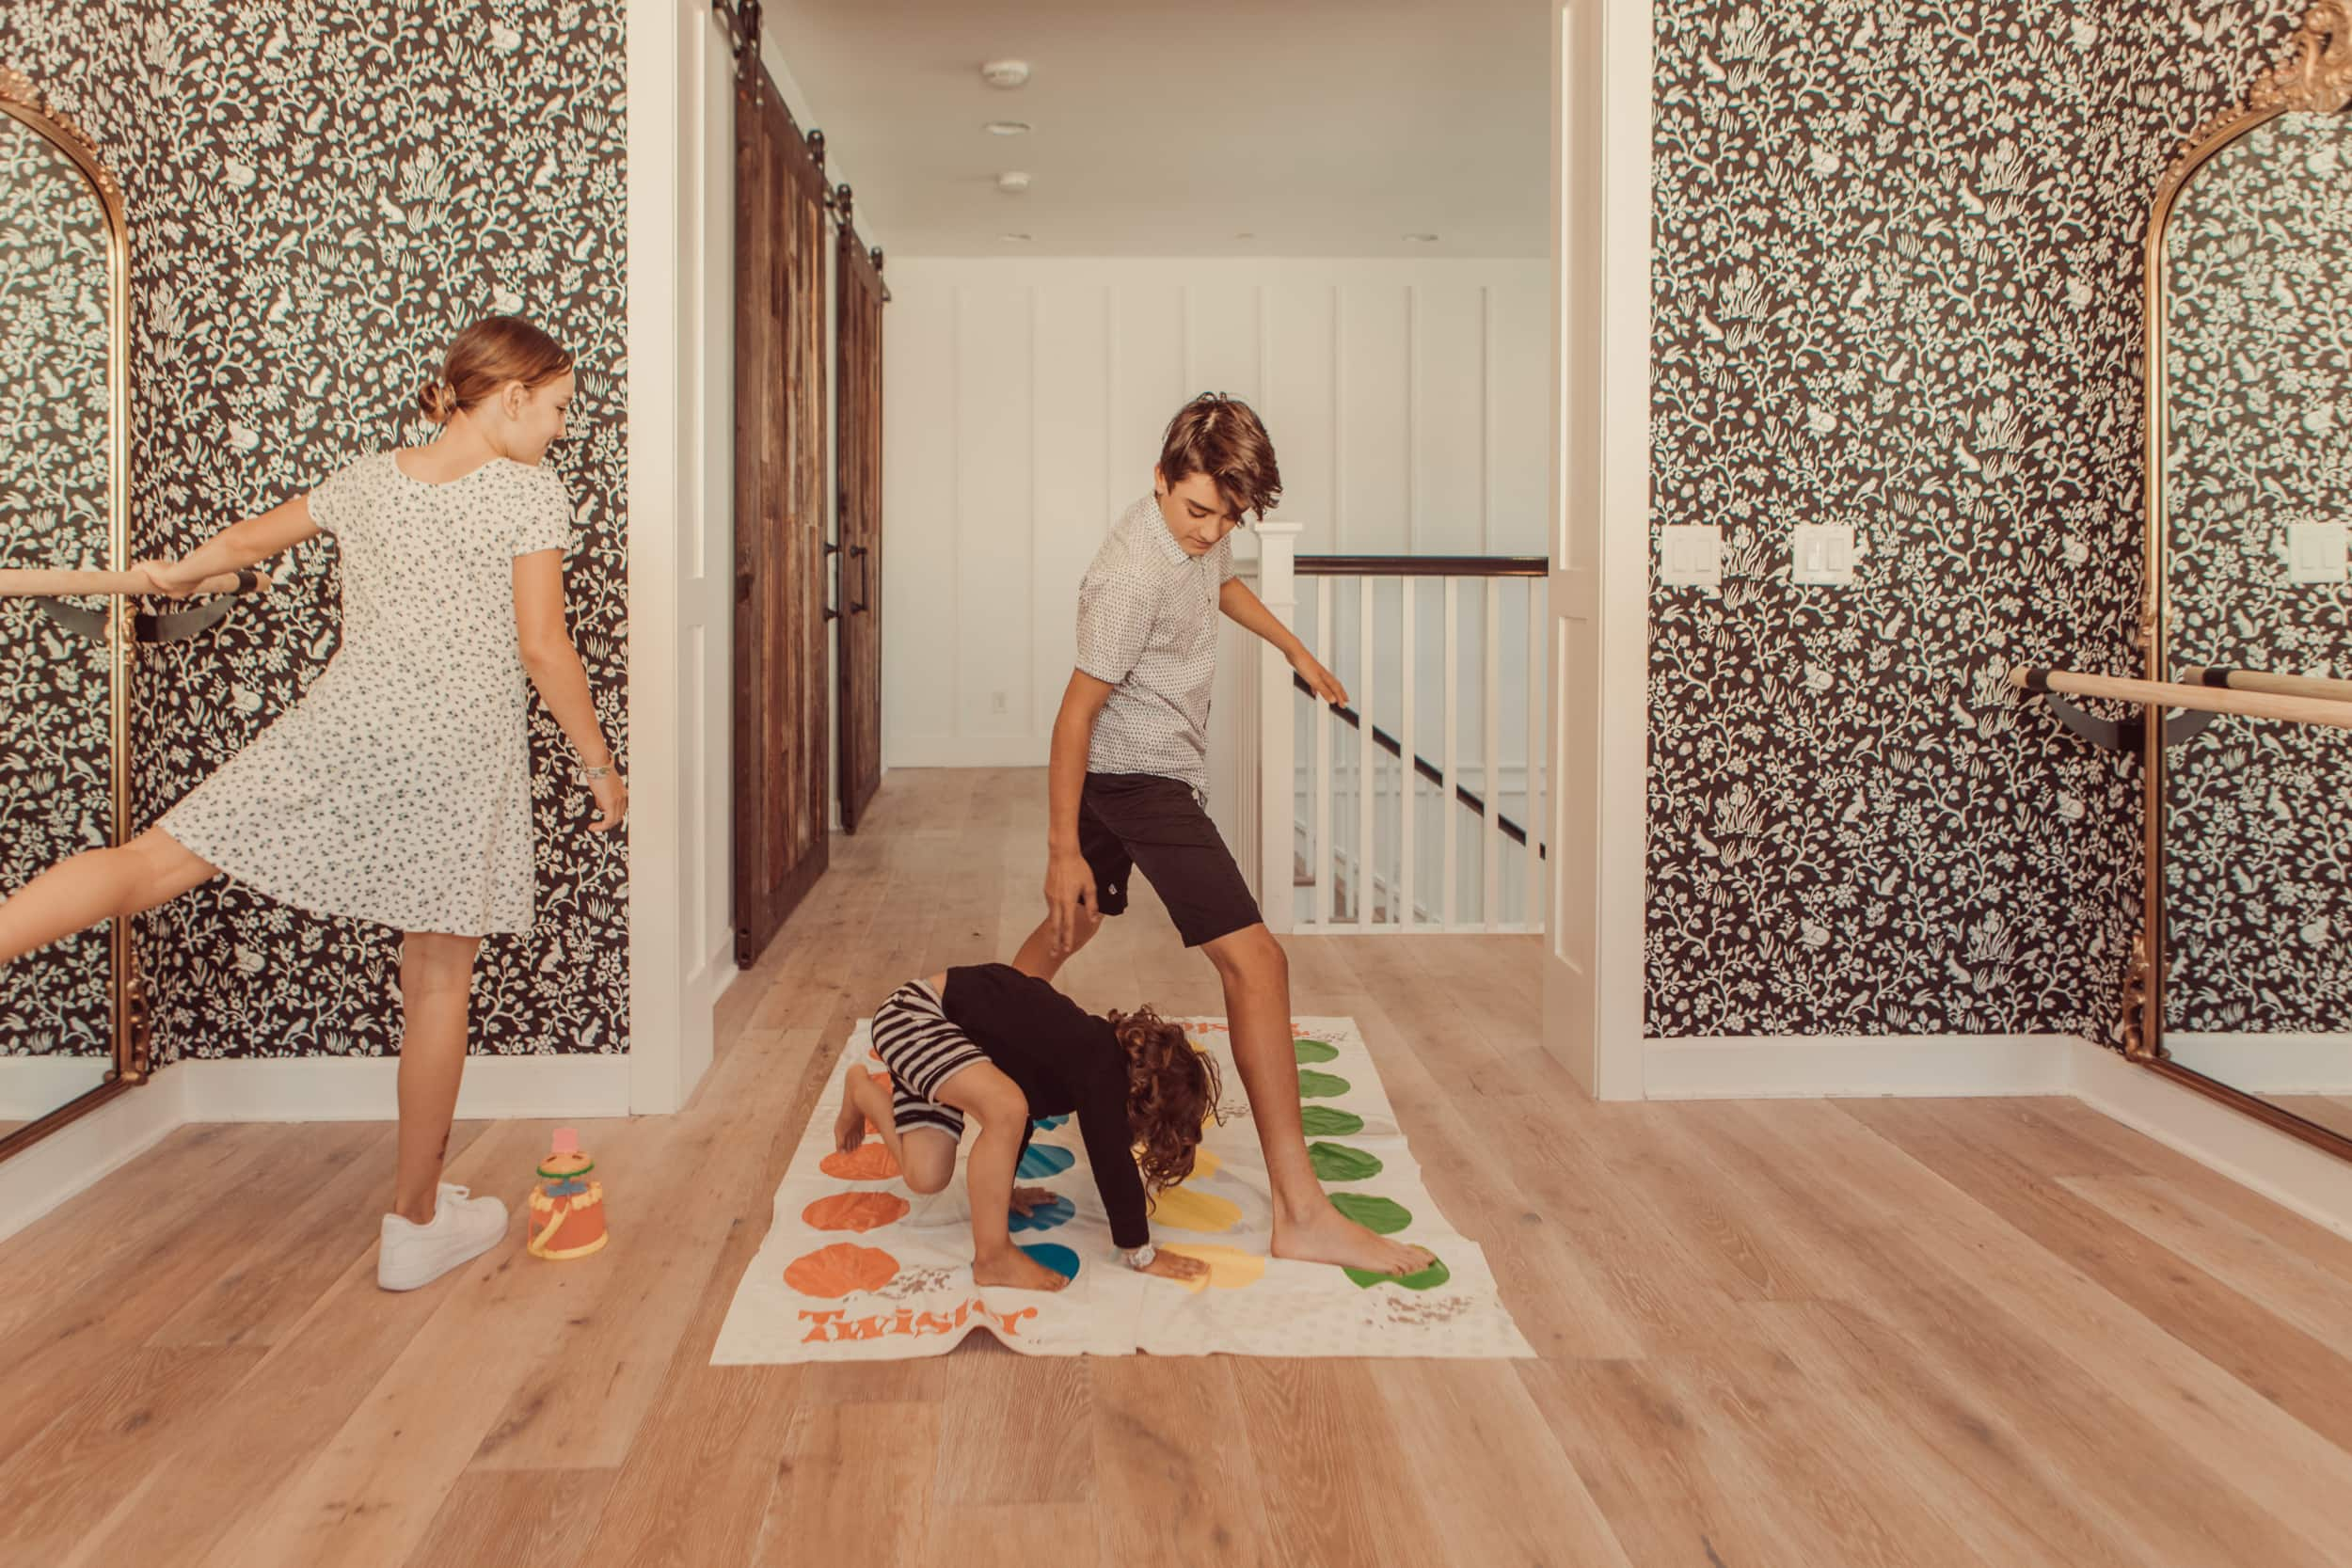 kids playing twister